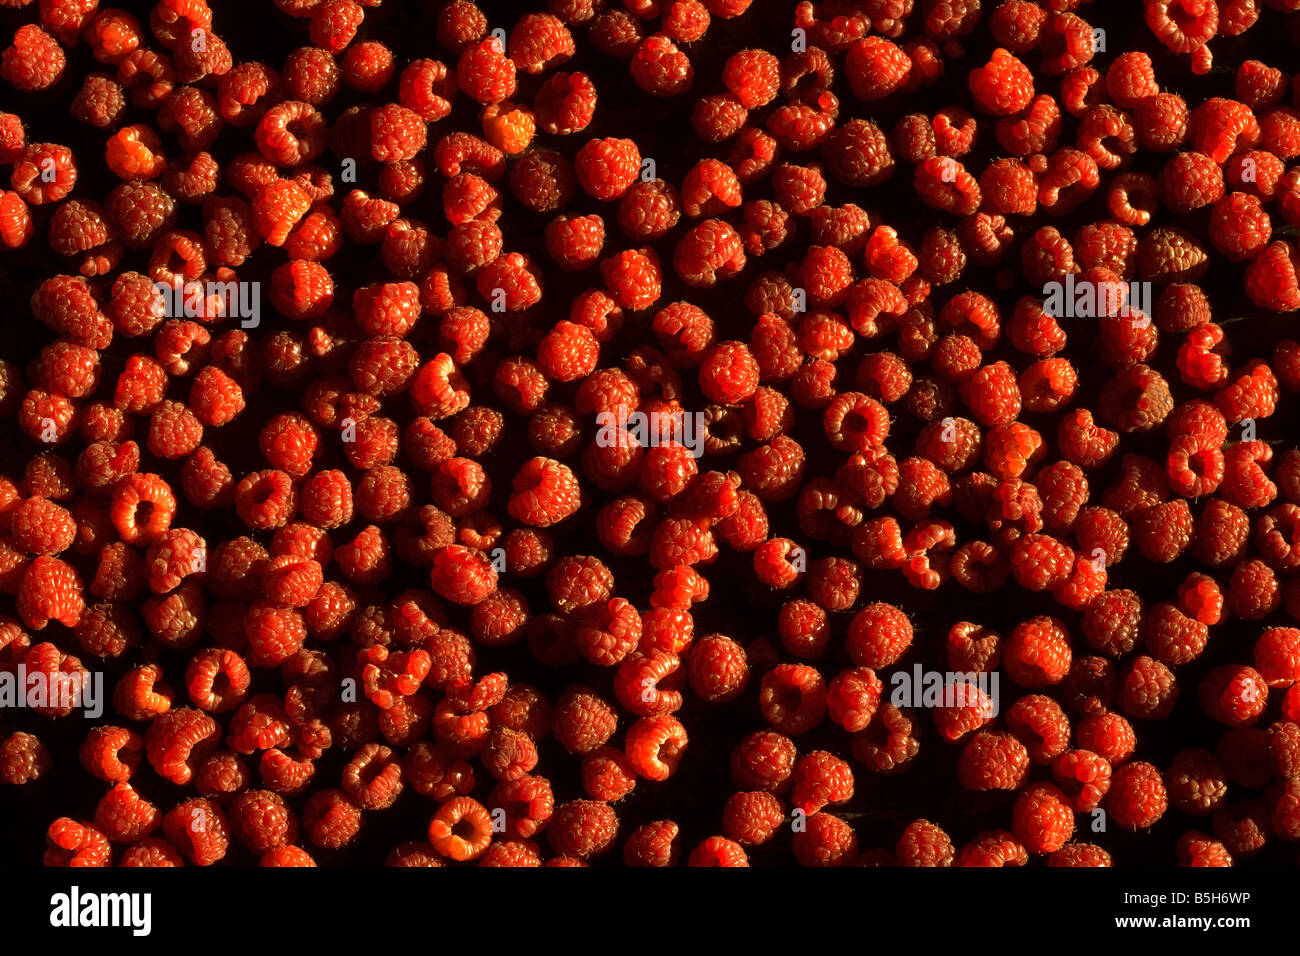 Raspberries, grouping, agriculture, hand-picked, forage, red berry, berries - Stock Image